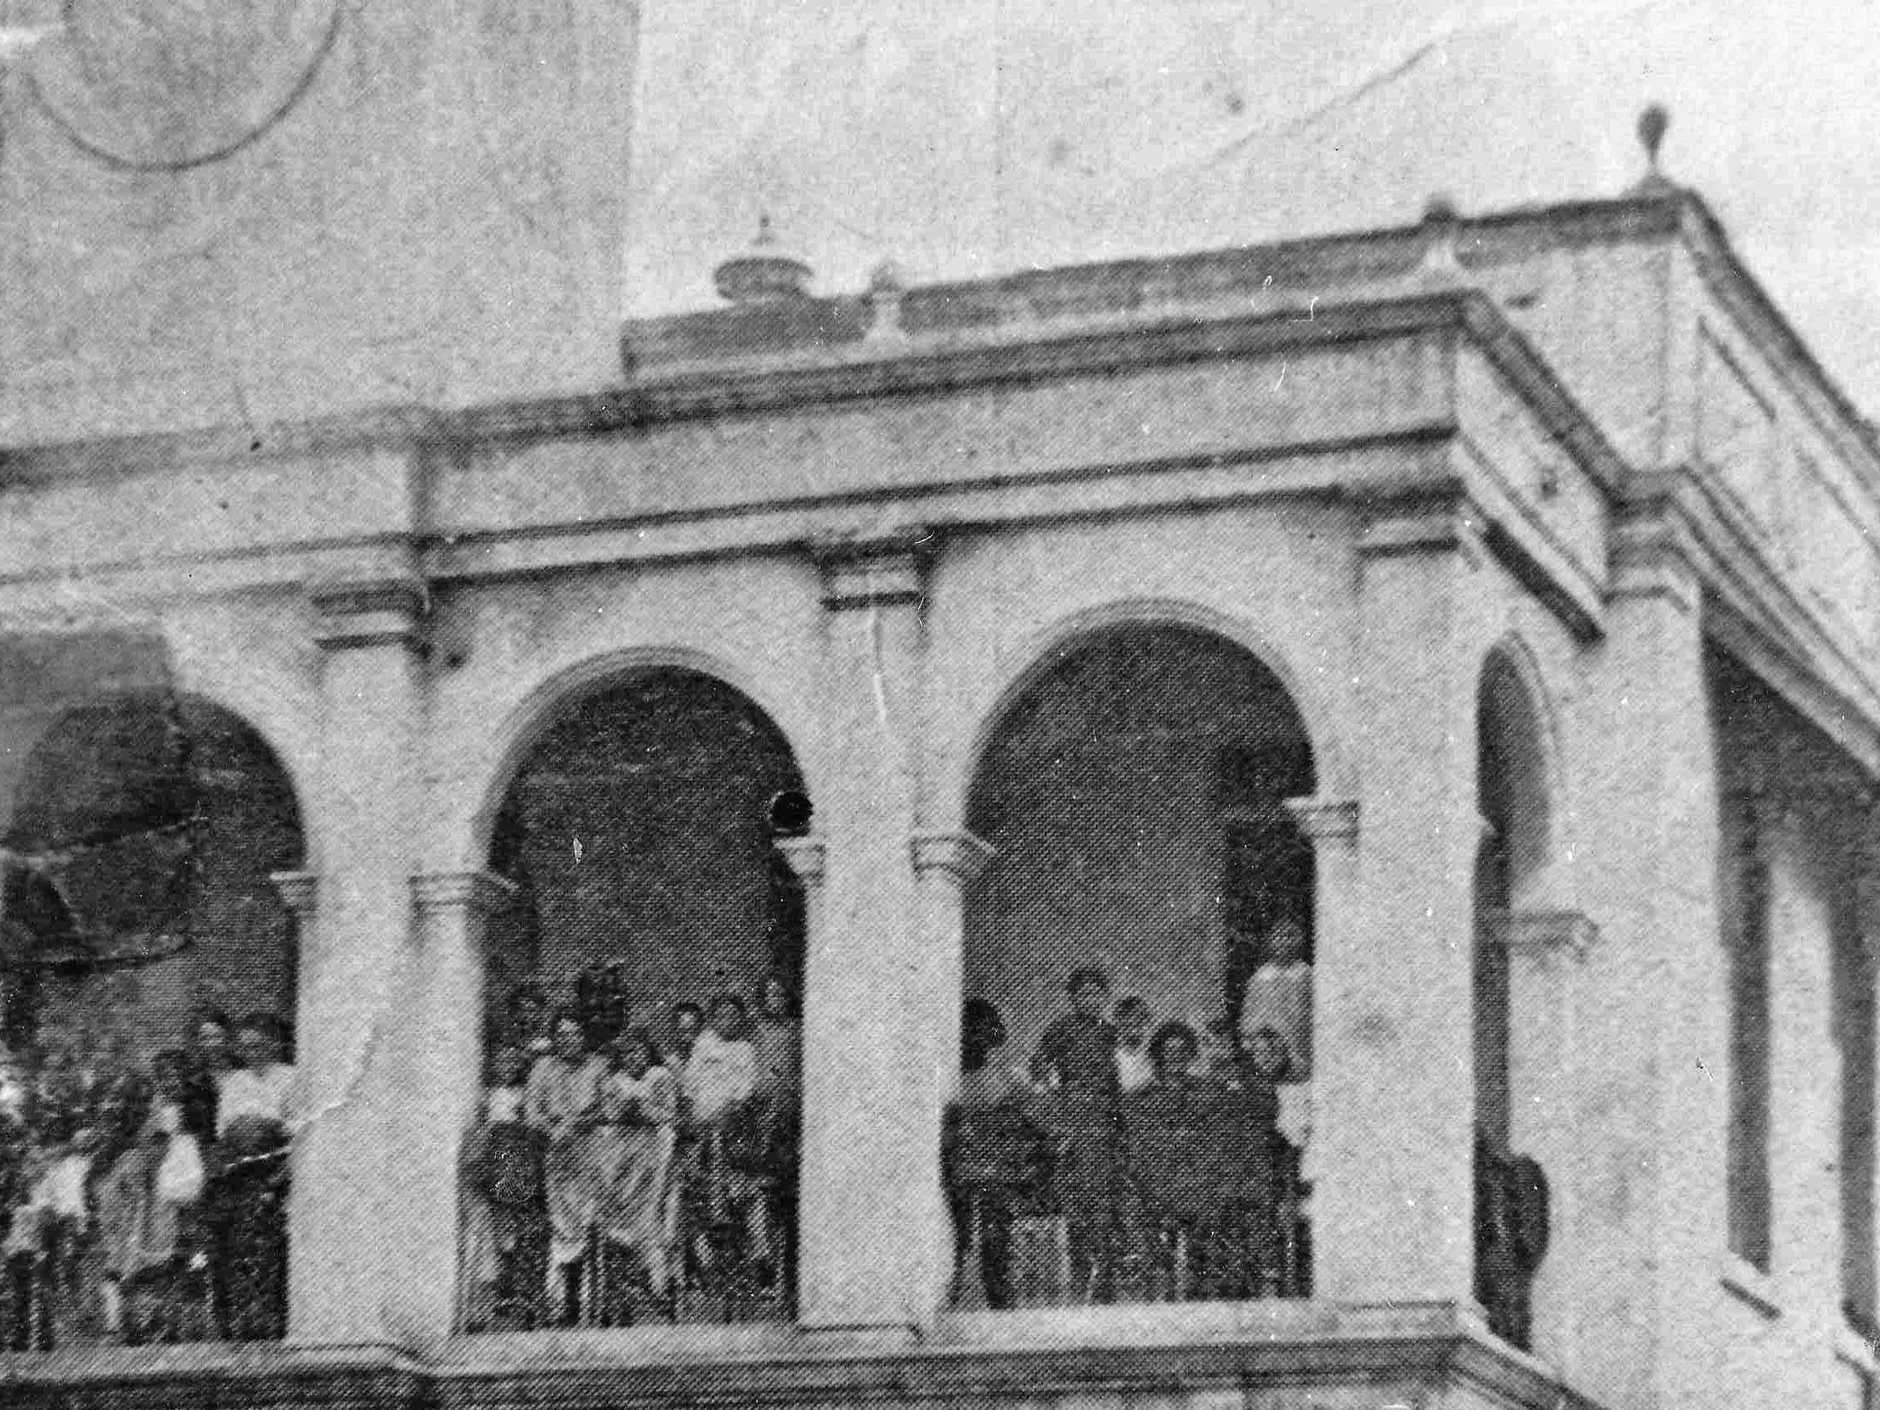 People left homeless after the cyclone in 1918 pictured at Town Hall.